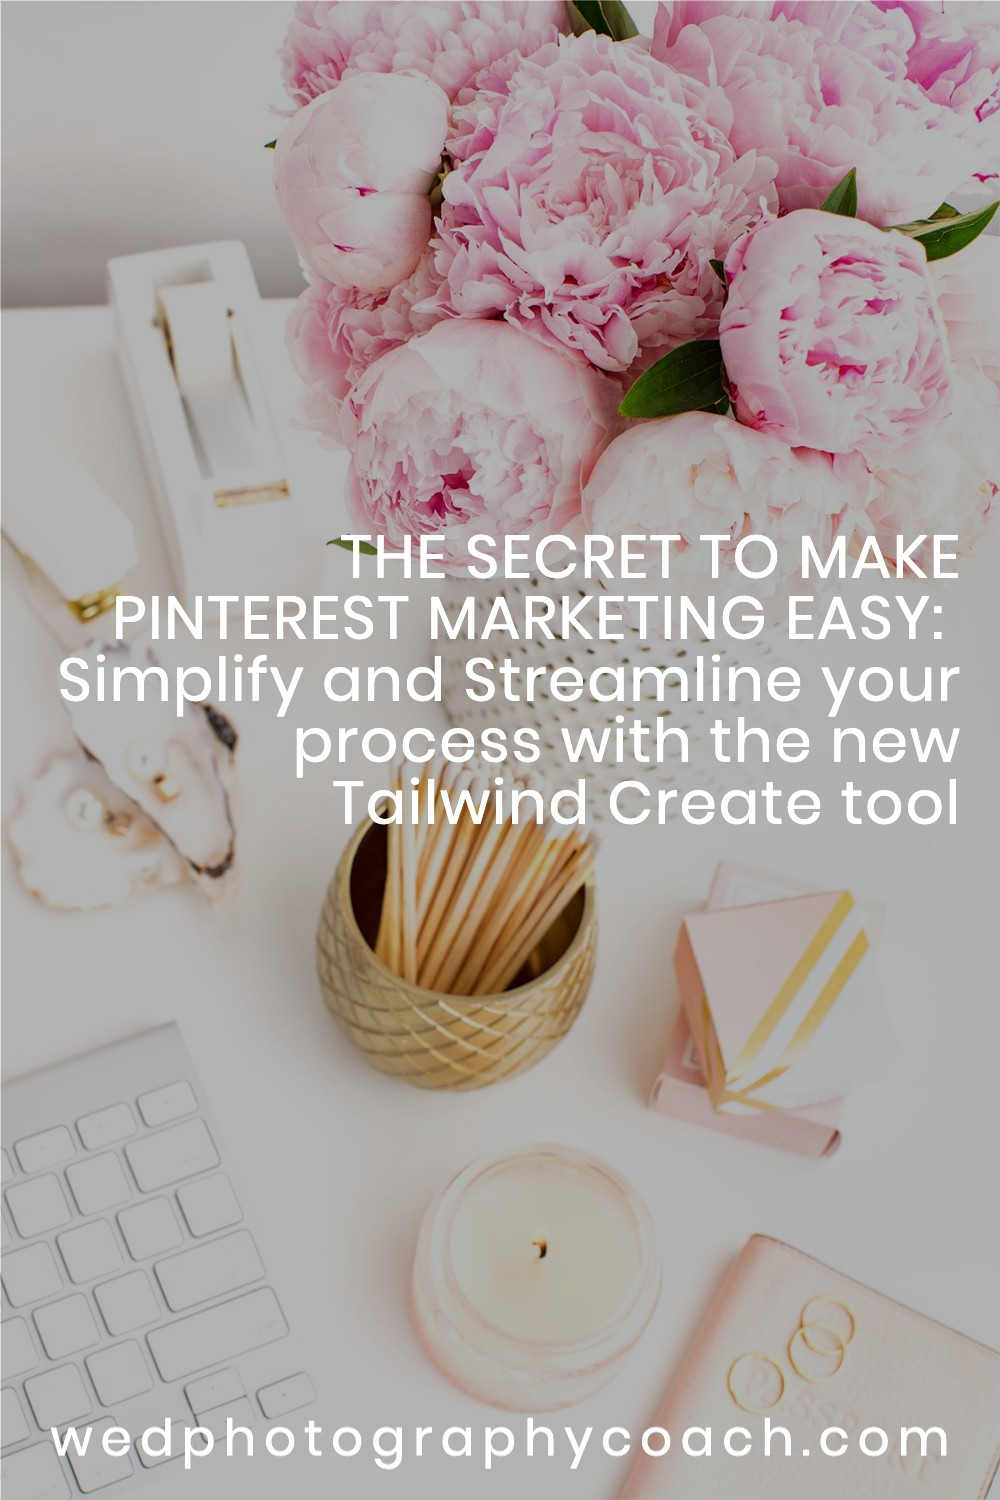 THE SECRET TO MAKE PINTEREST MARKETING EASY:  Simplify and Streamline your process with the new Tailwind Create.